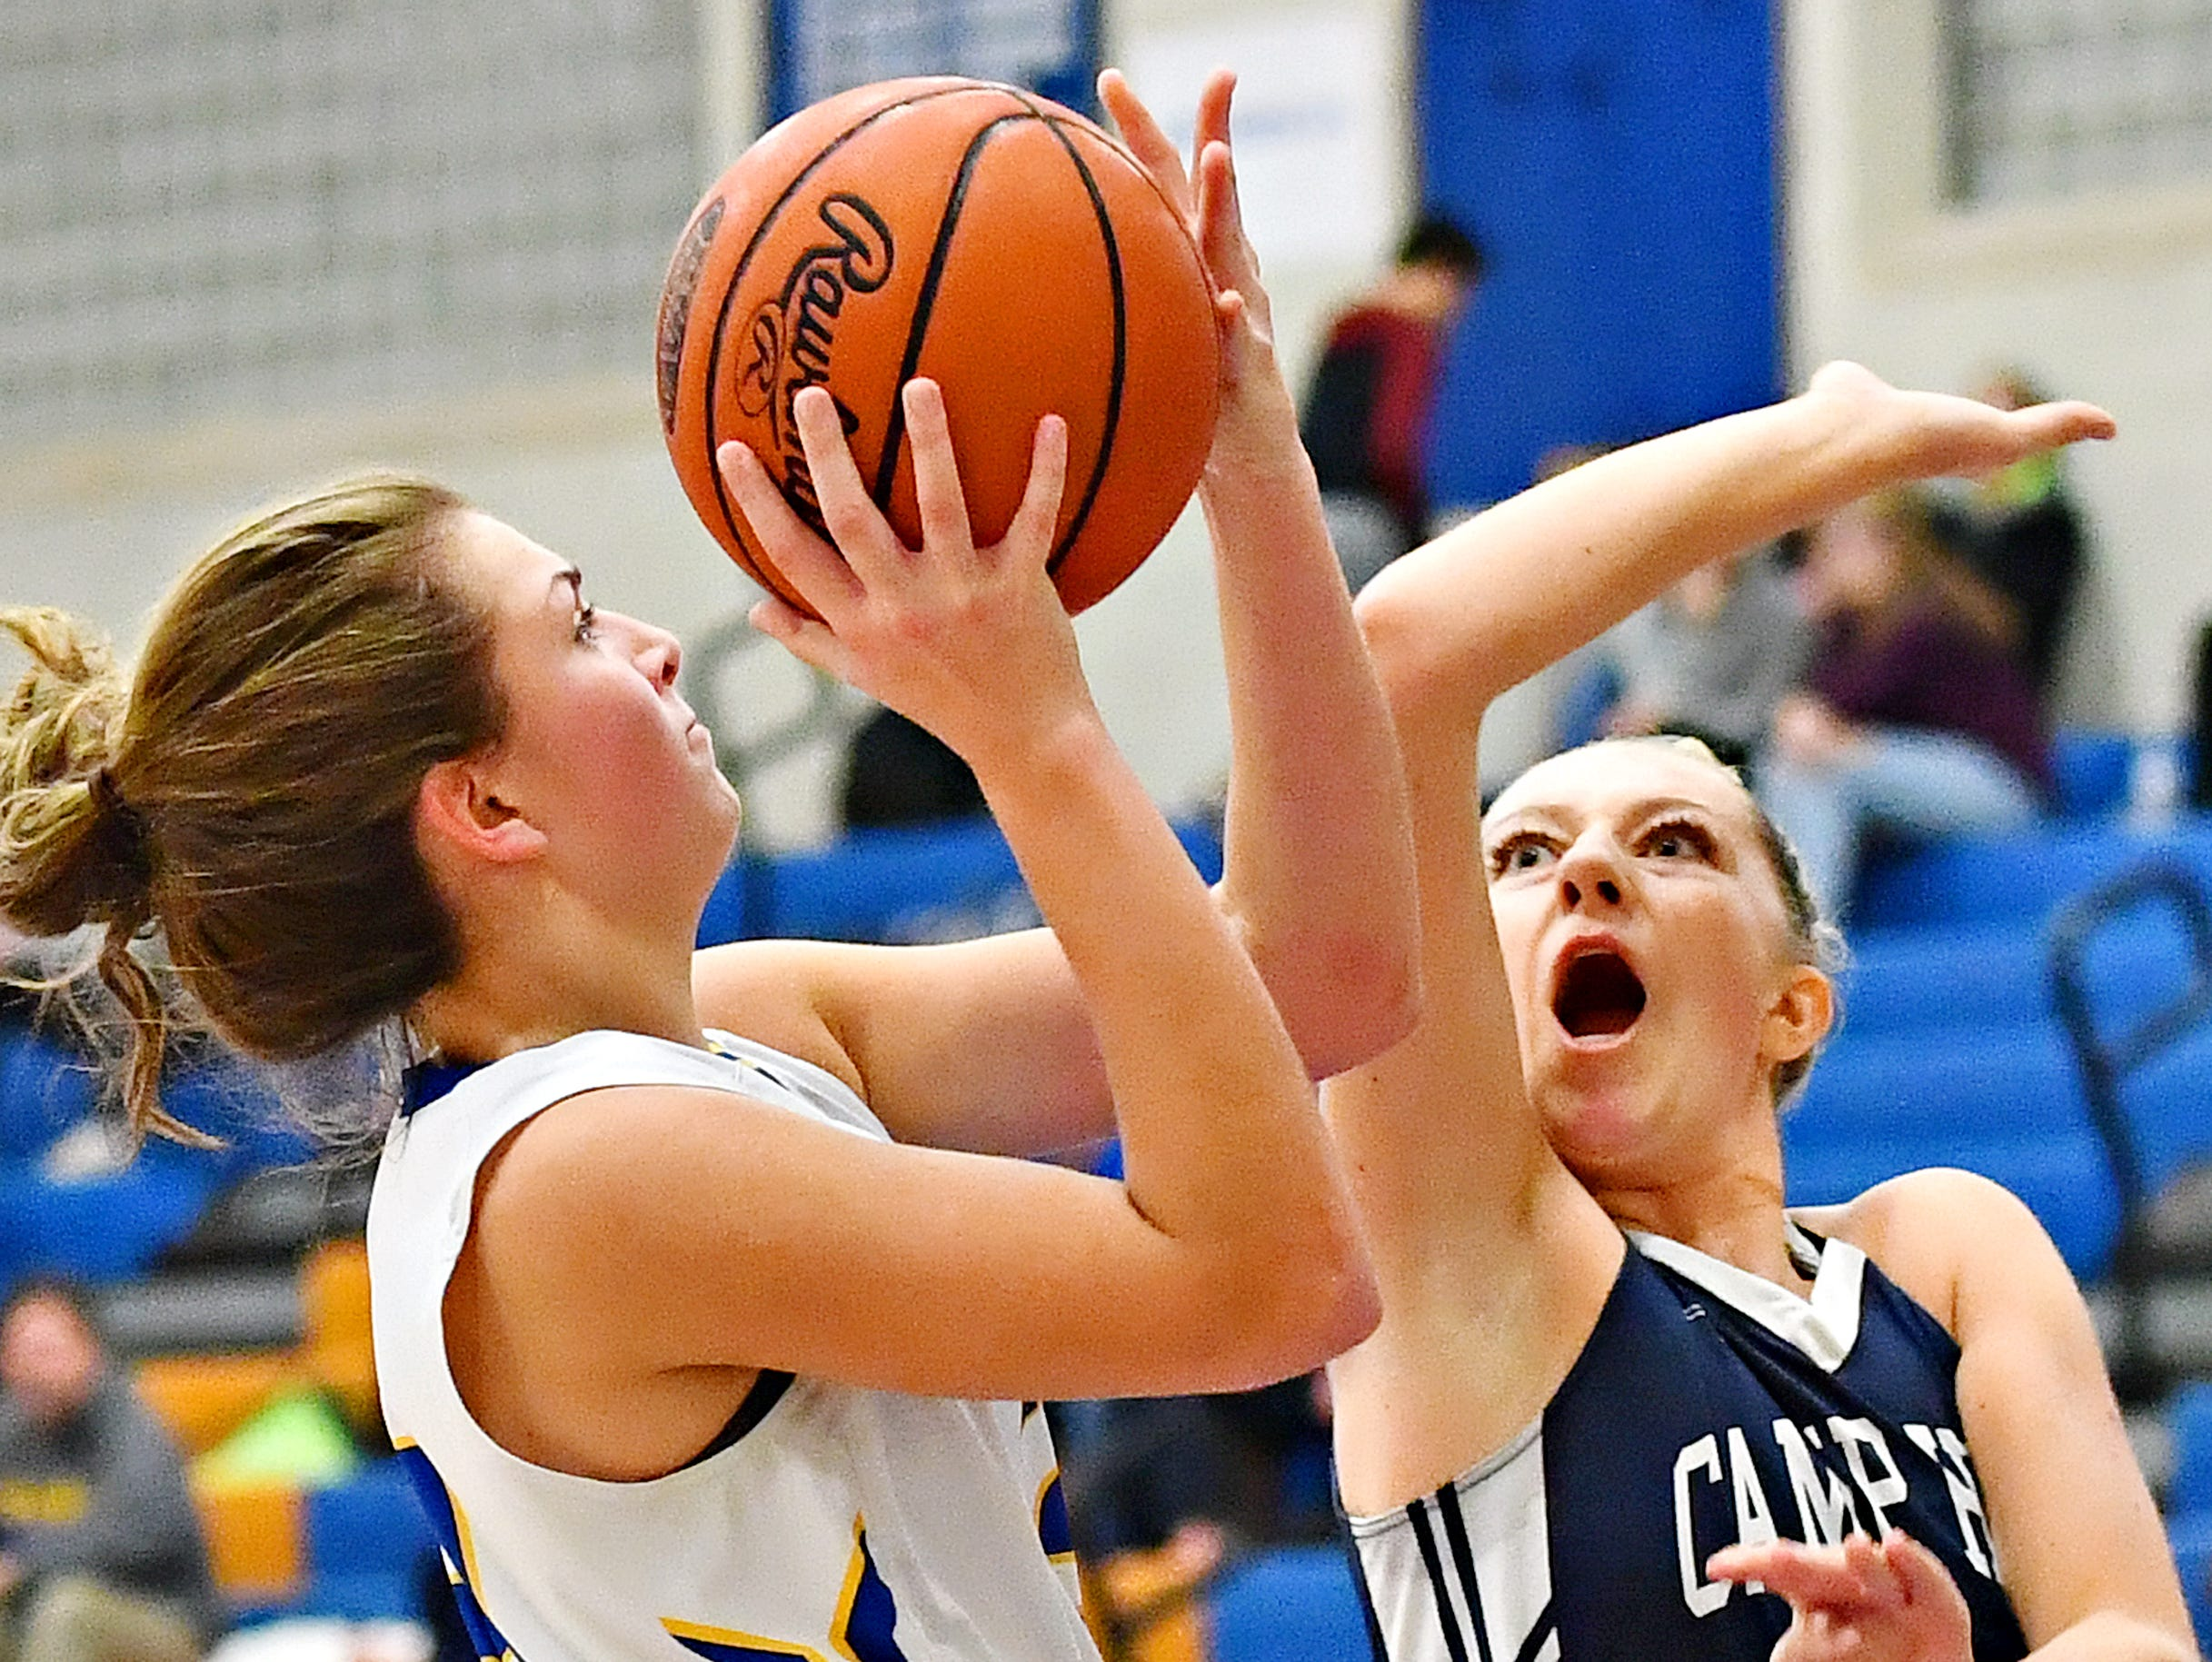 Kennard-Dale's Jaedyn McKeon, left, is fouled by Camp Hill's Sheridan Reid during girls' basketball action at Kennard-Dale High School in Fawn Grove, Wednesday, Dec. 12, 2018. Kennard-Dale would win the game 47-28. Dawn J. Sagert photo